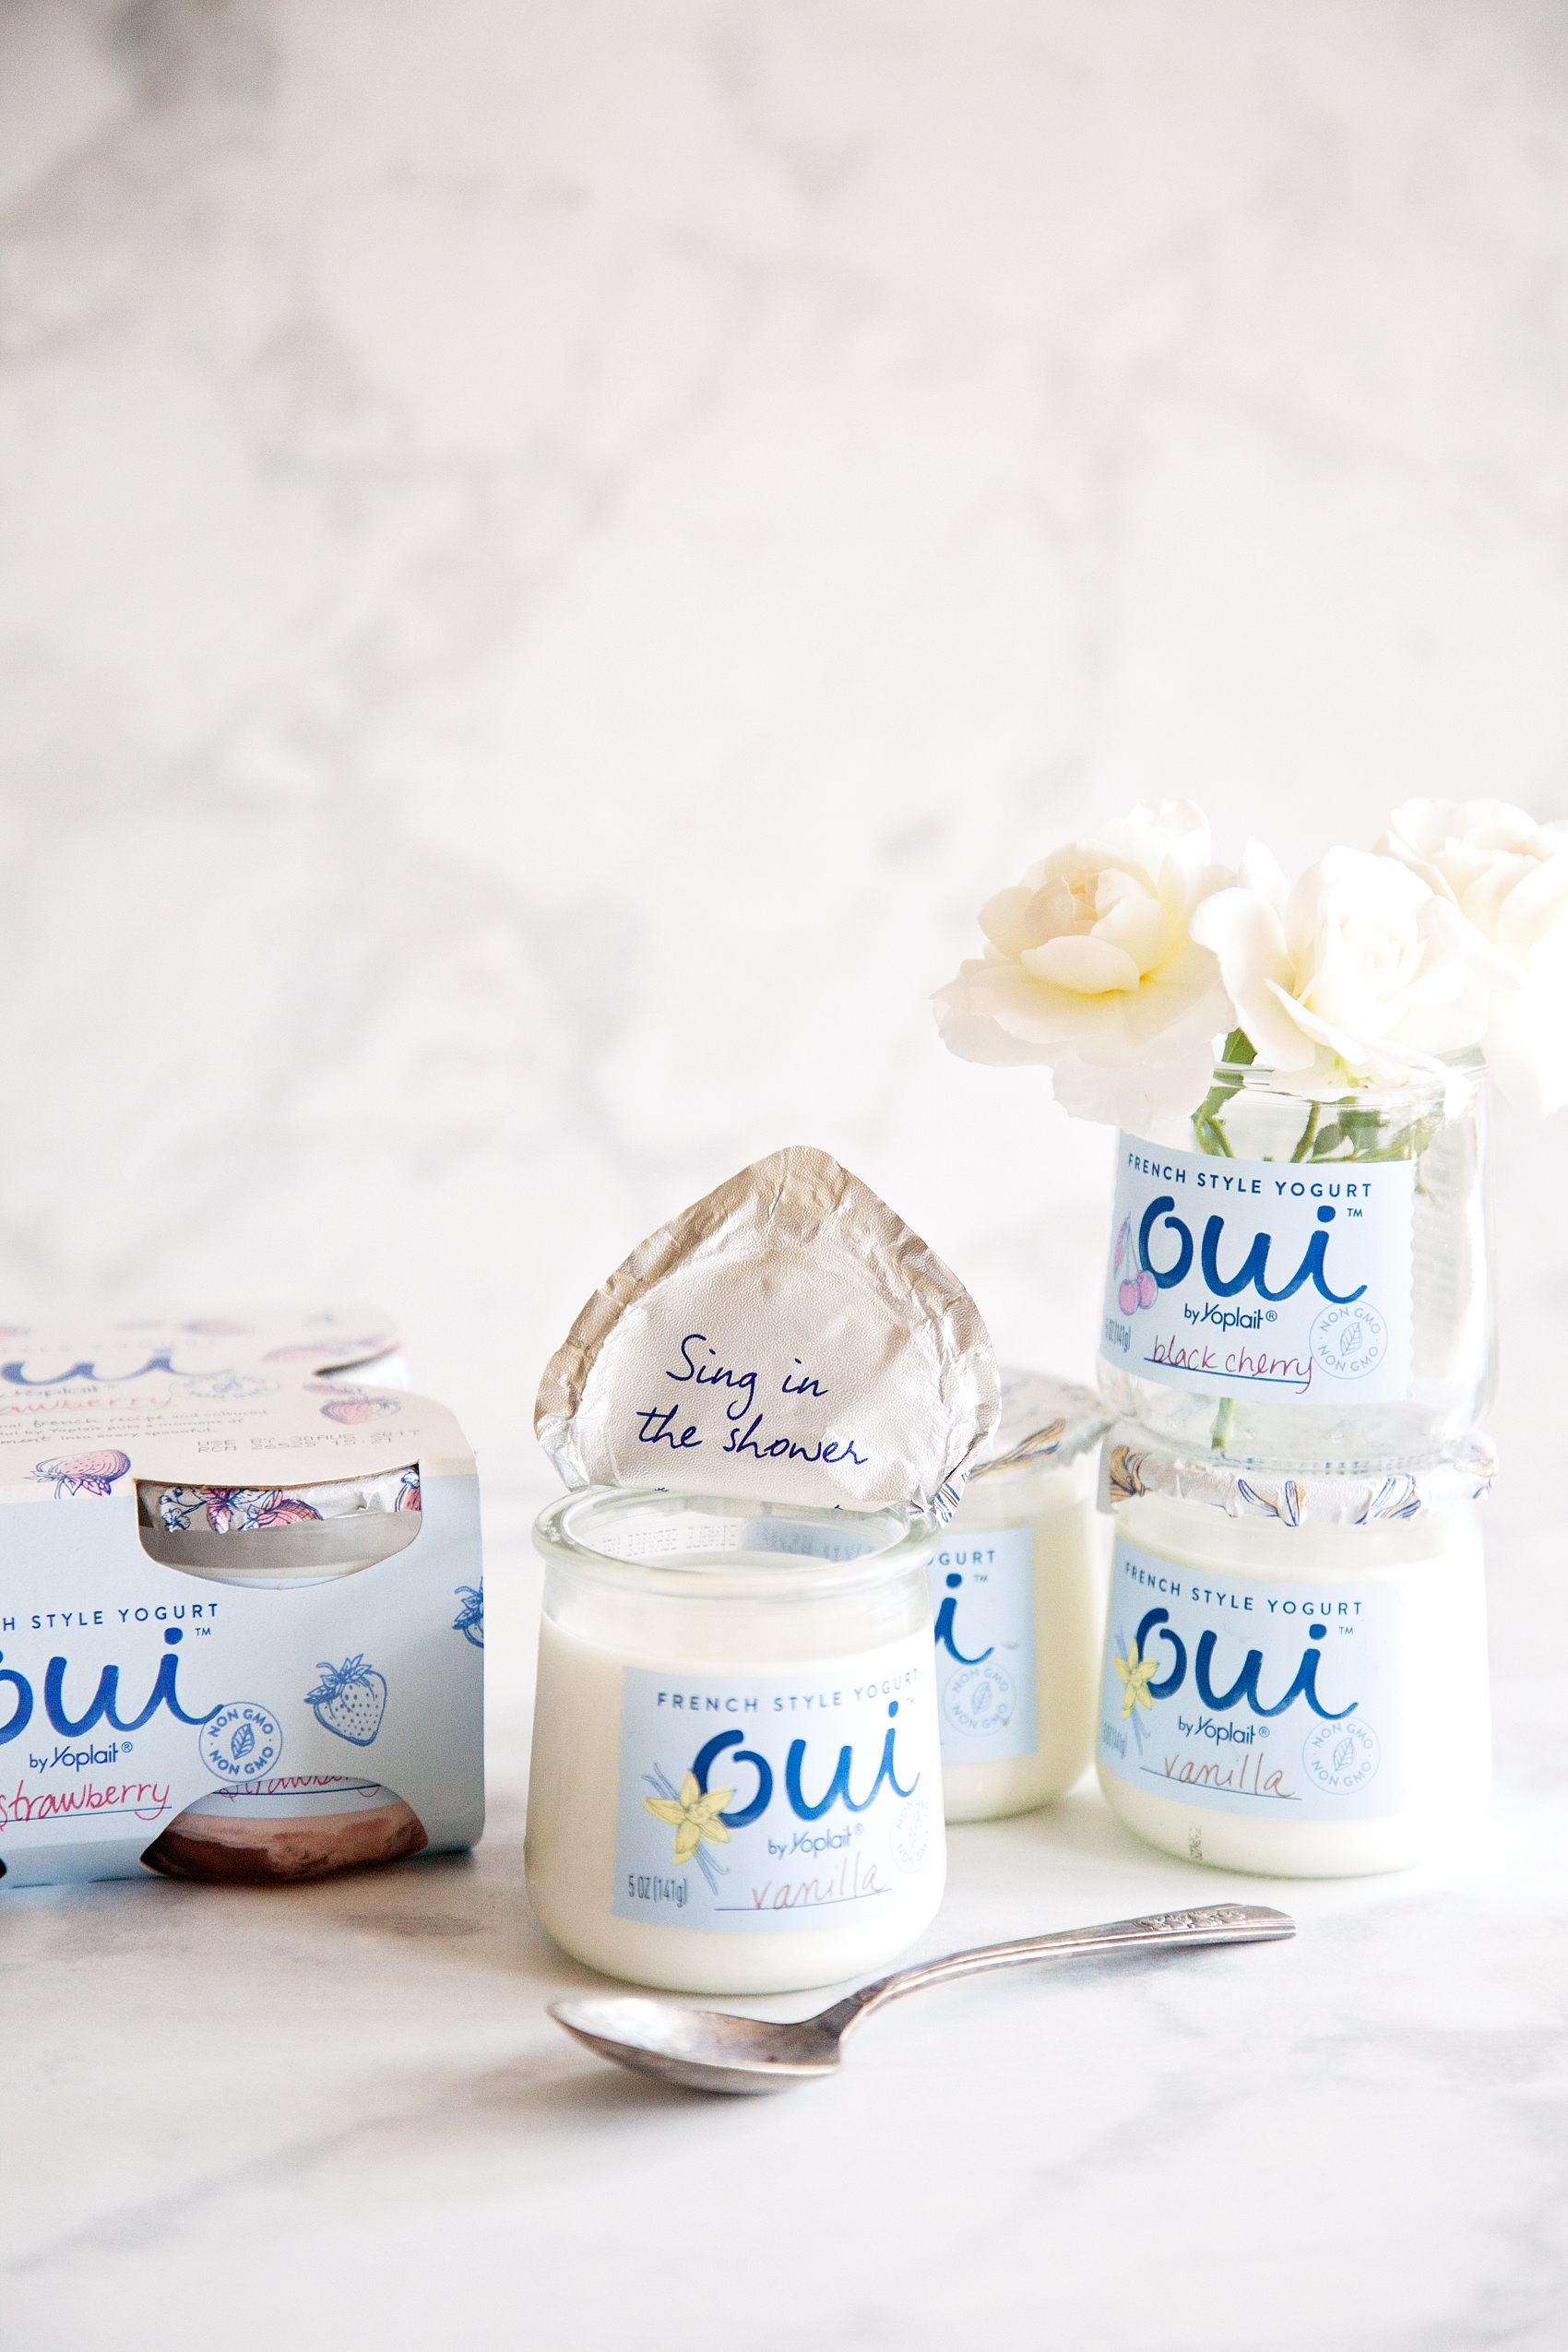 Take a little bit of ME time with Yoplait Oui yogurt and WhipperBerry